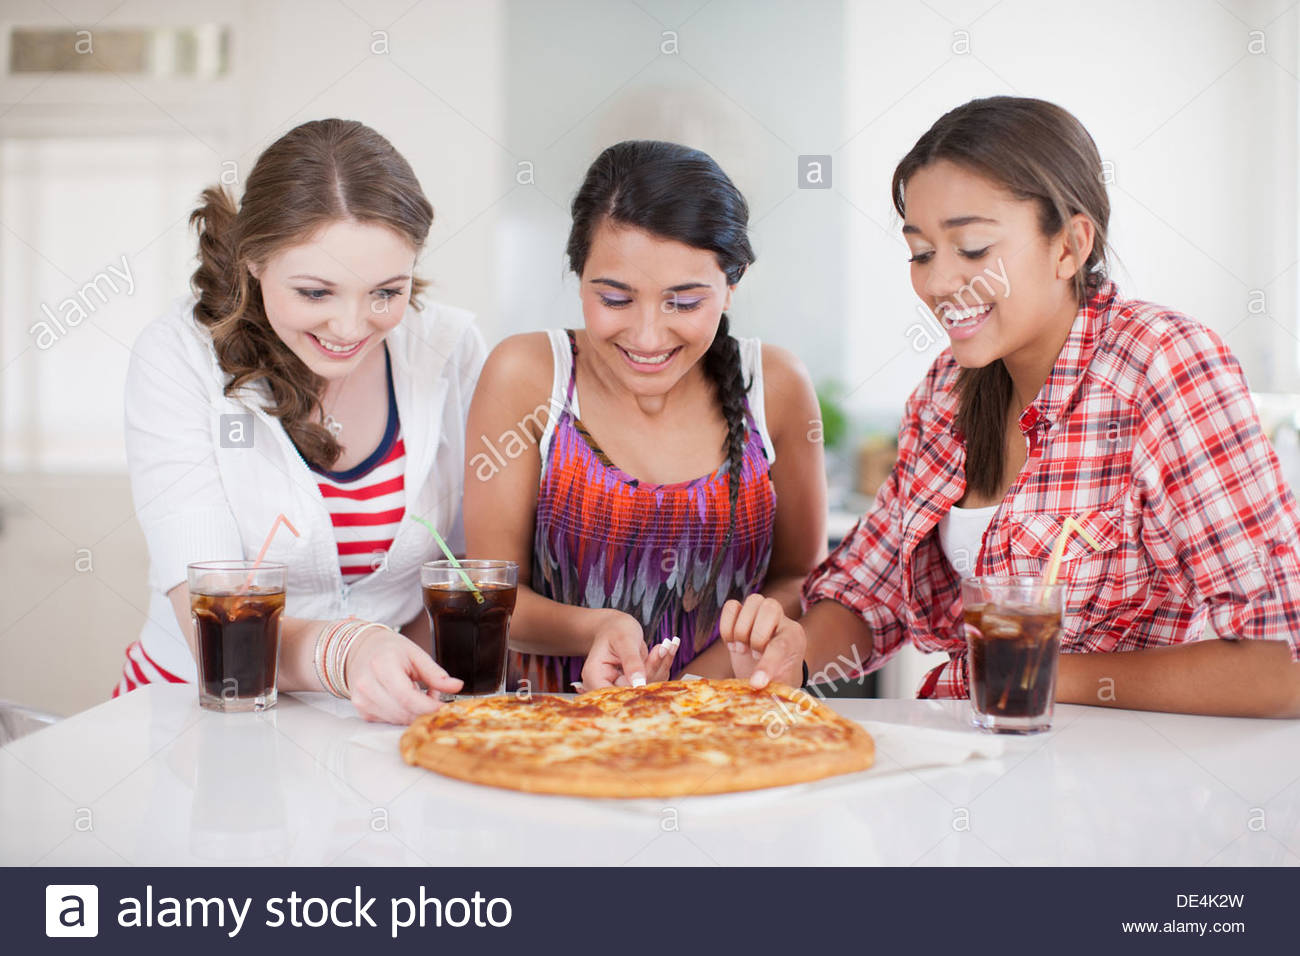 Teenage Girls eating pizza Photo Stock